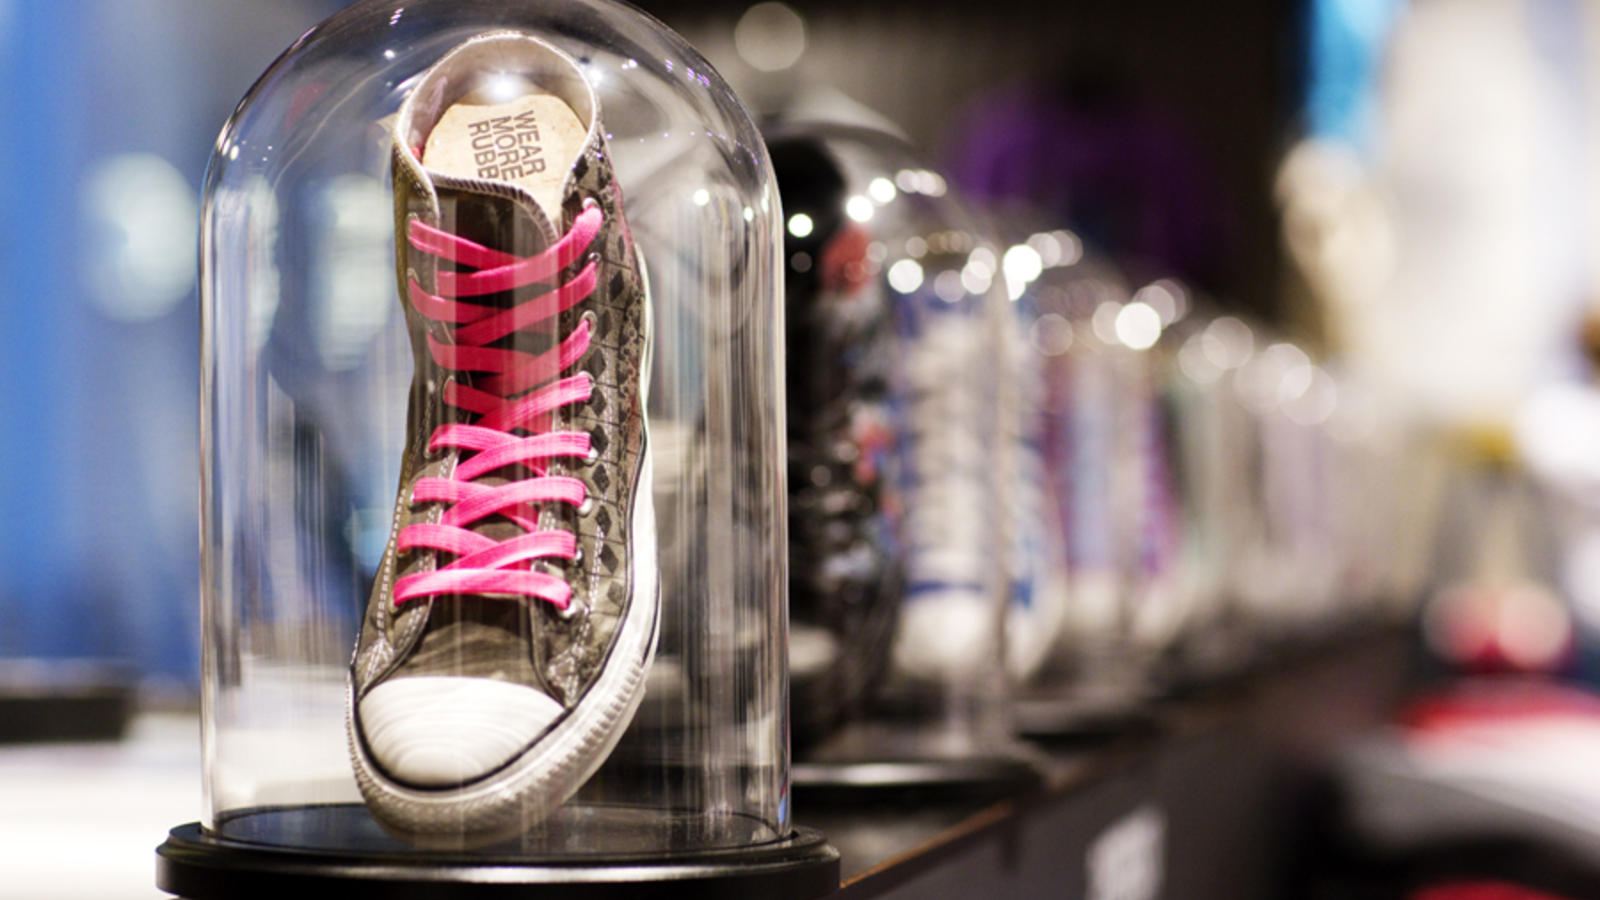 converse shoes jersey garden mall